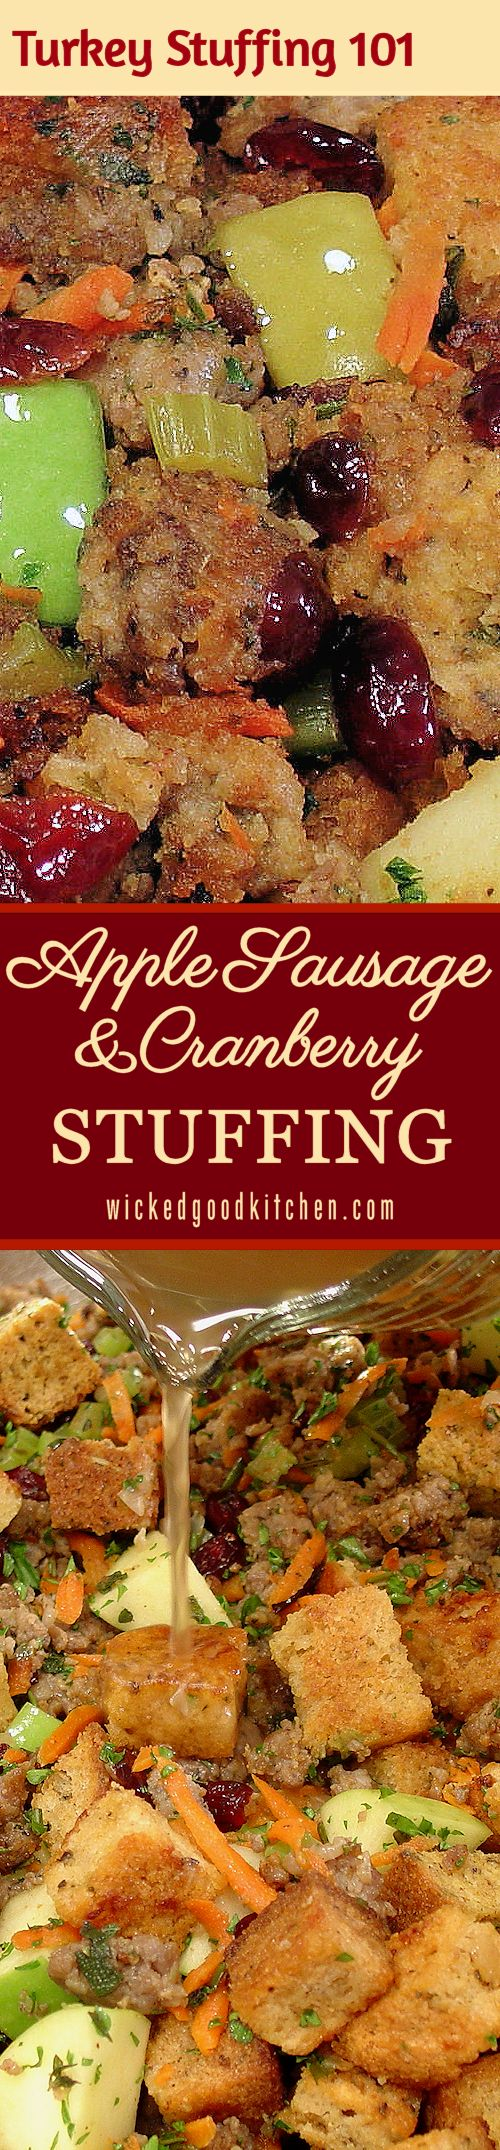 TURKEY STUFFING 101: Step-by-Step Tutorial with Photos & Instructions plus 10 Tips for Making Stuffing or Dressing ~ Fresh, savory, tart, sweet and festive, the perfect stuffing for #Thanksgiving or #Christmas #Holidays! Featured at the Allrecipes.com site with a 5-star rating and over 2,000 reviews. It will rock your ever-loving turkey stuffing world! | diy gluten free option recipe